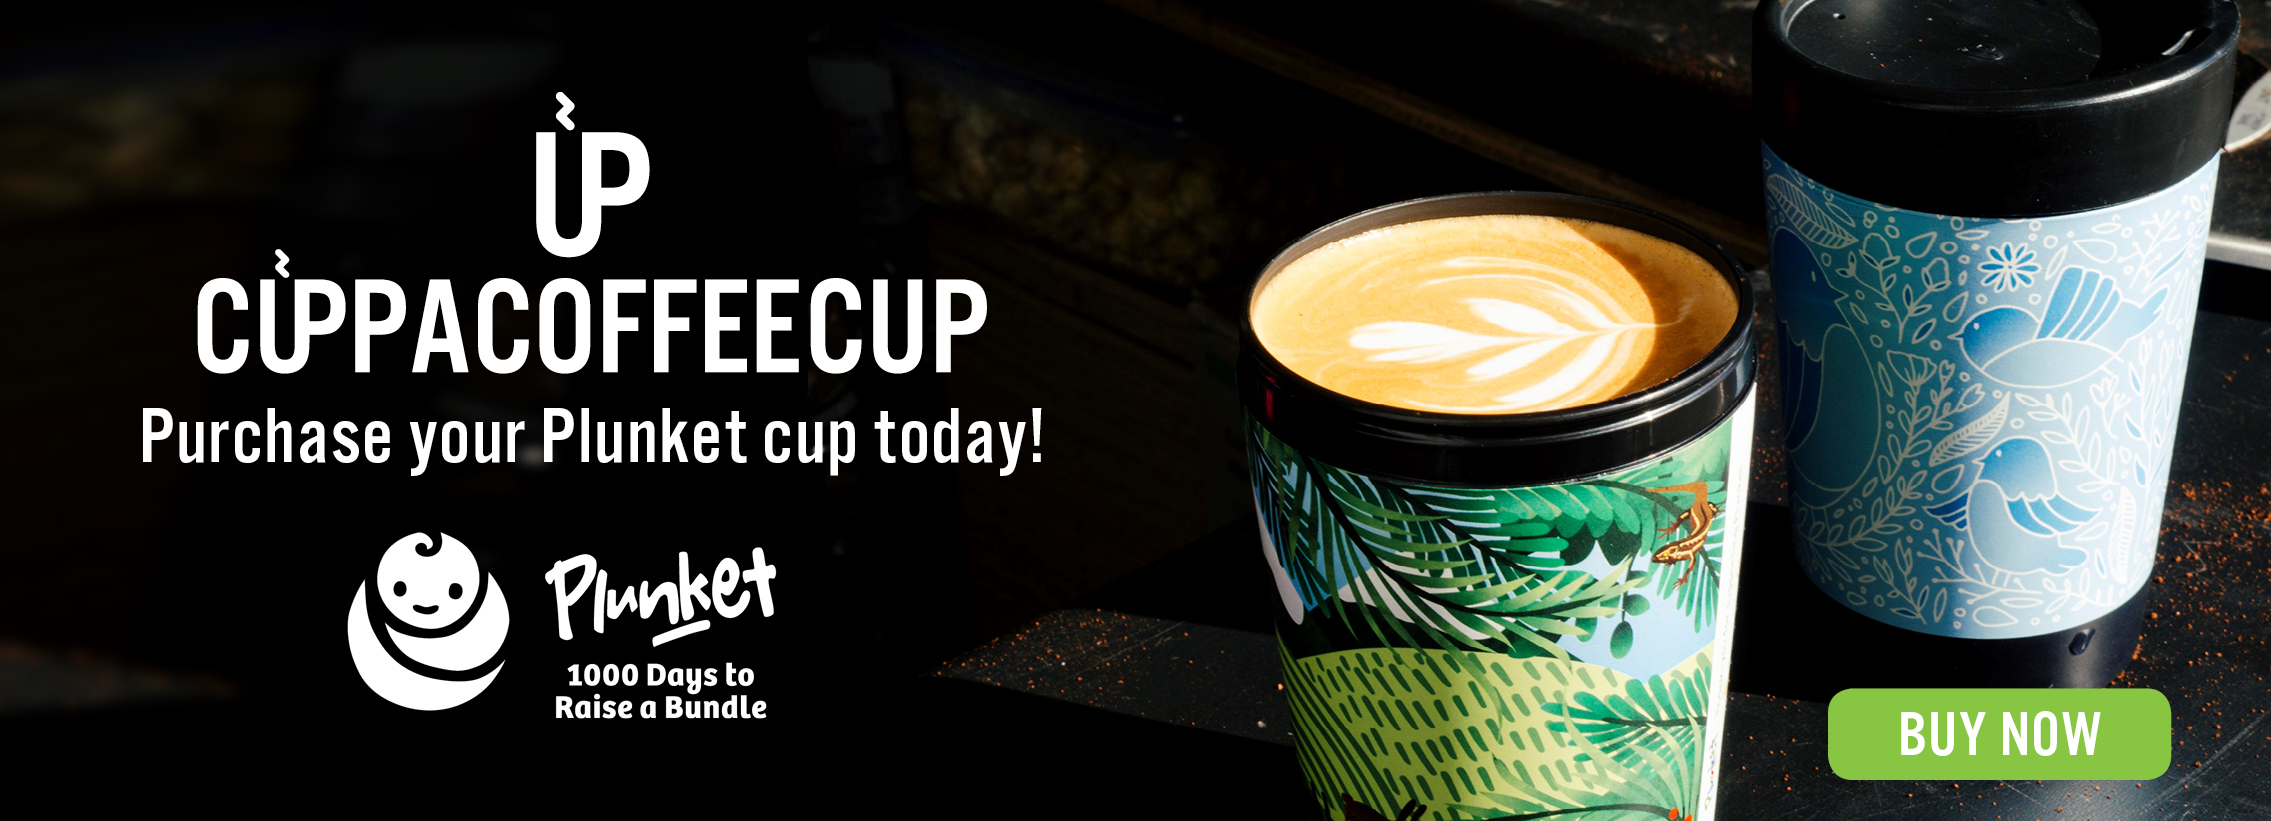 Landscape slider picture and link to our partners Plunket Cup. Buy one of our Designer Coffee Cups from them today.